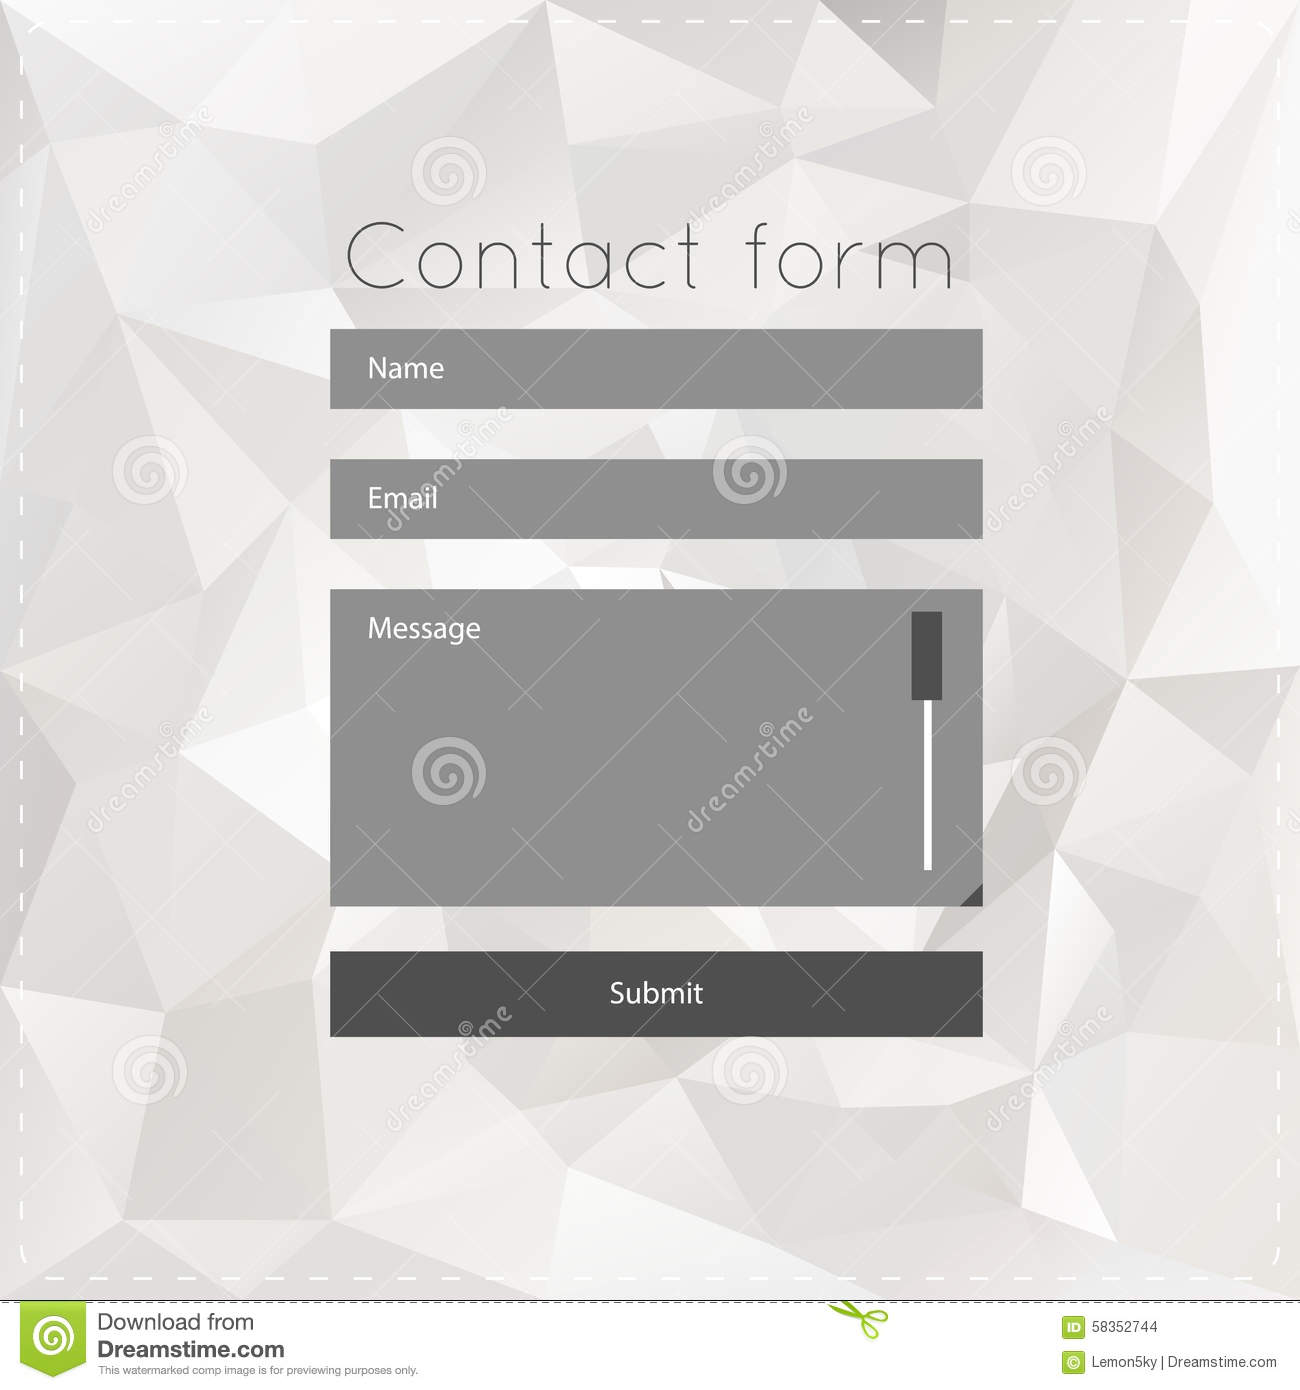 Simple contact us form templates stock vector for Contact us template free download